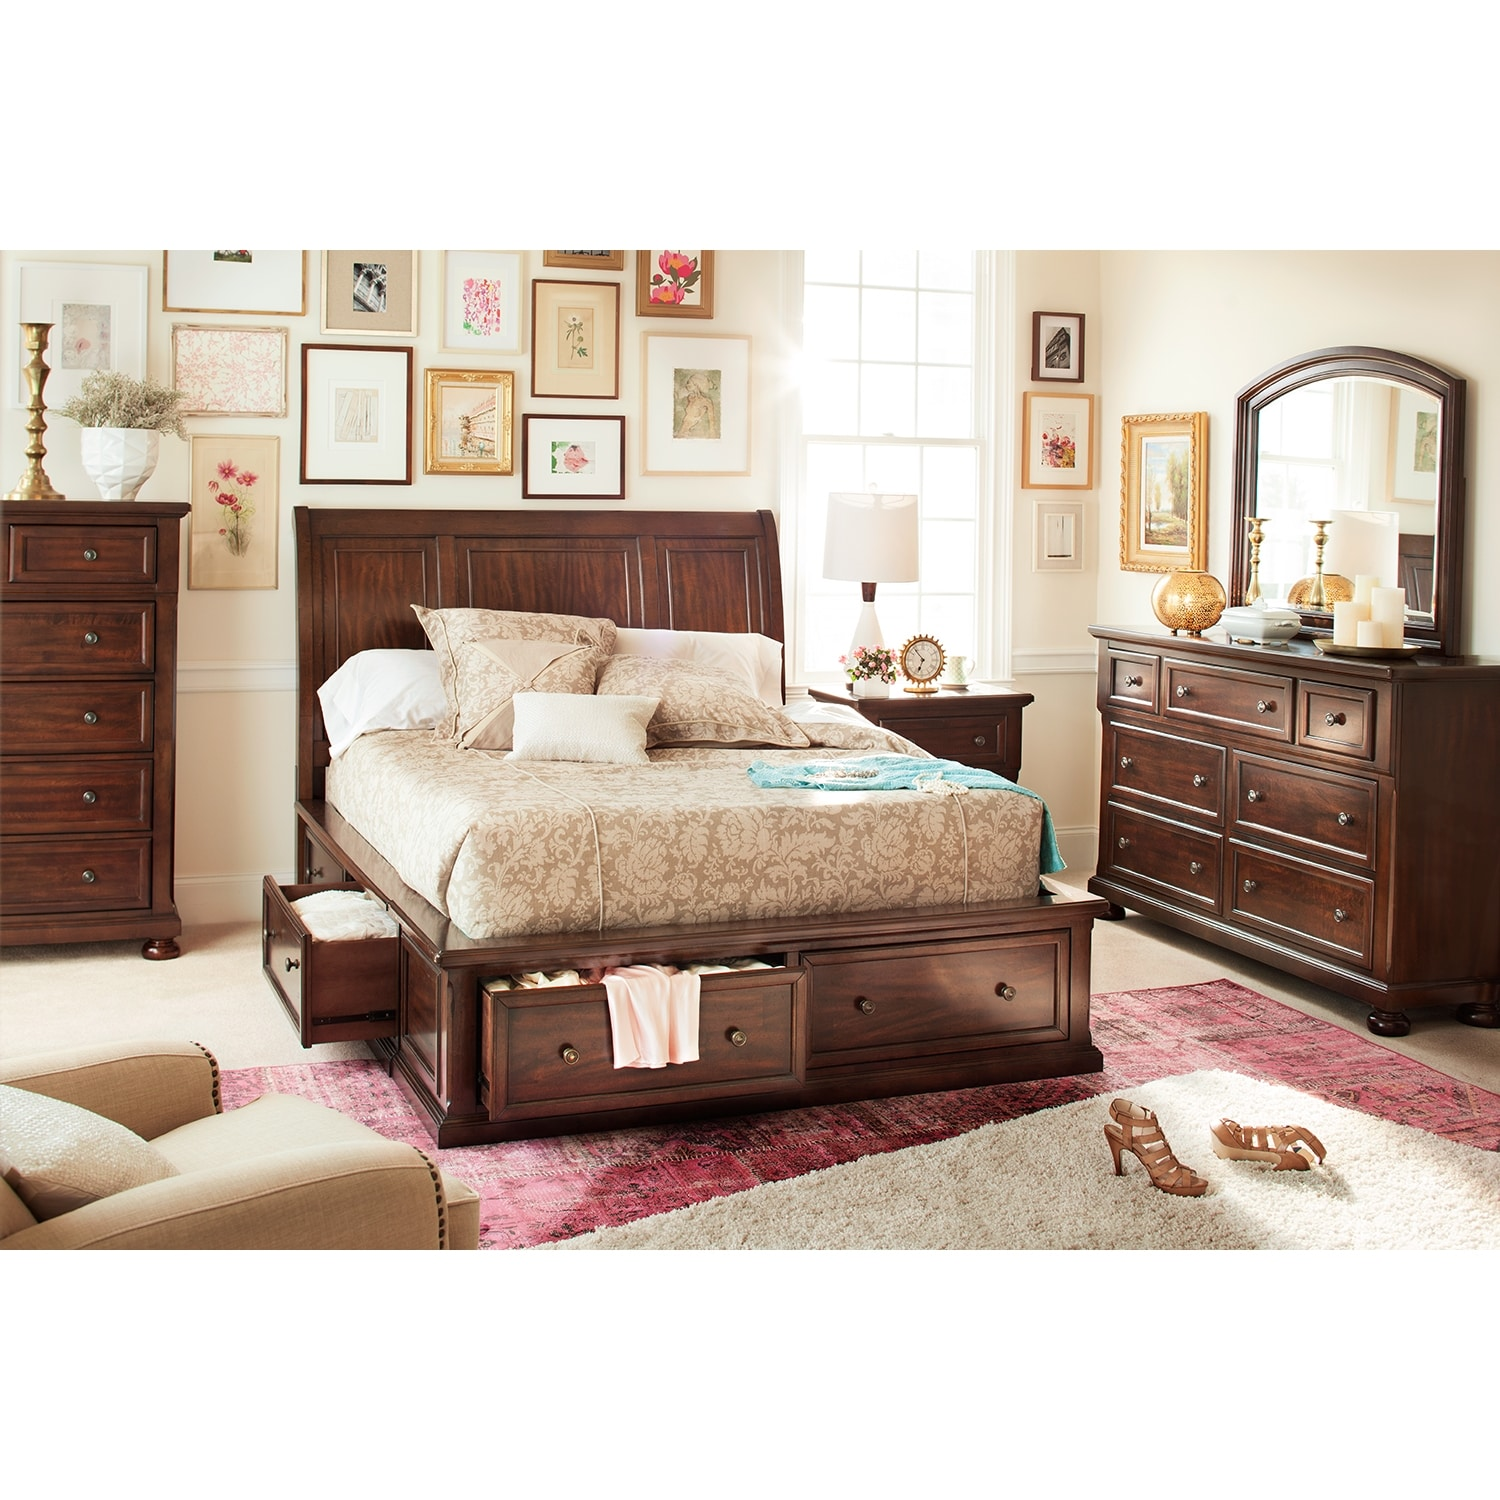 store sets rcwilley view furniture king willey set oak park piece rc mission bedroom jsp queen storage